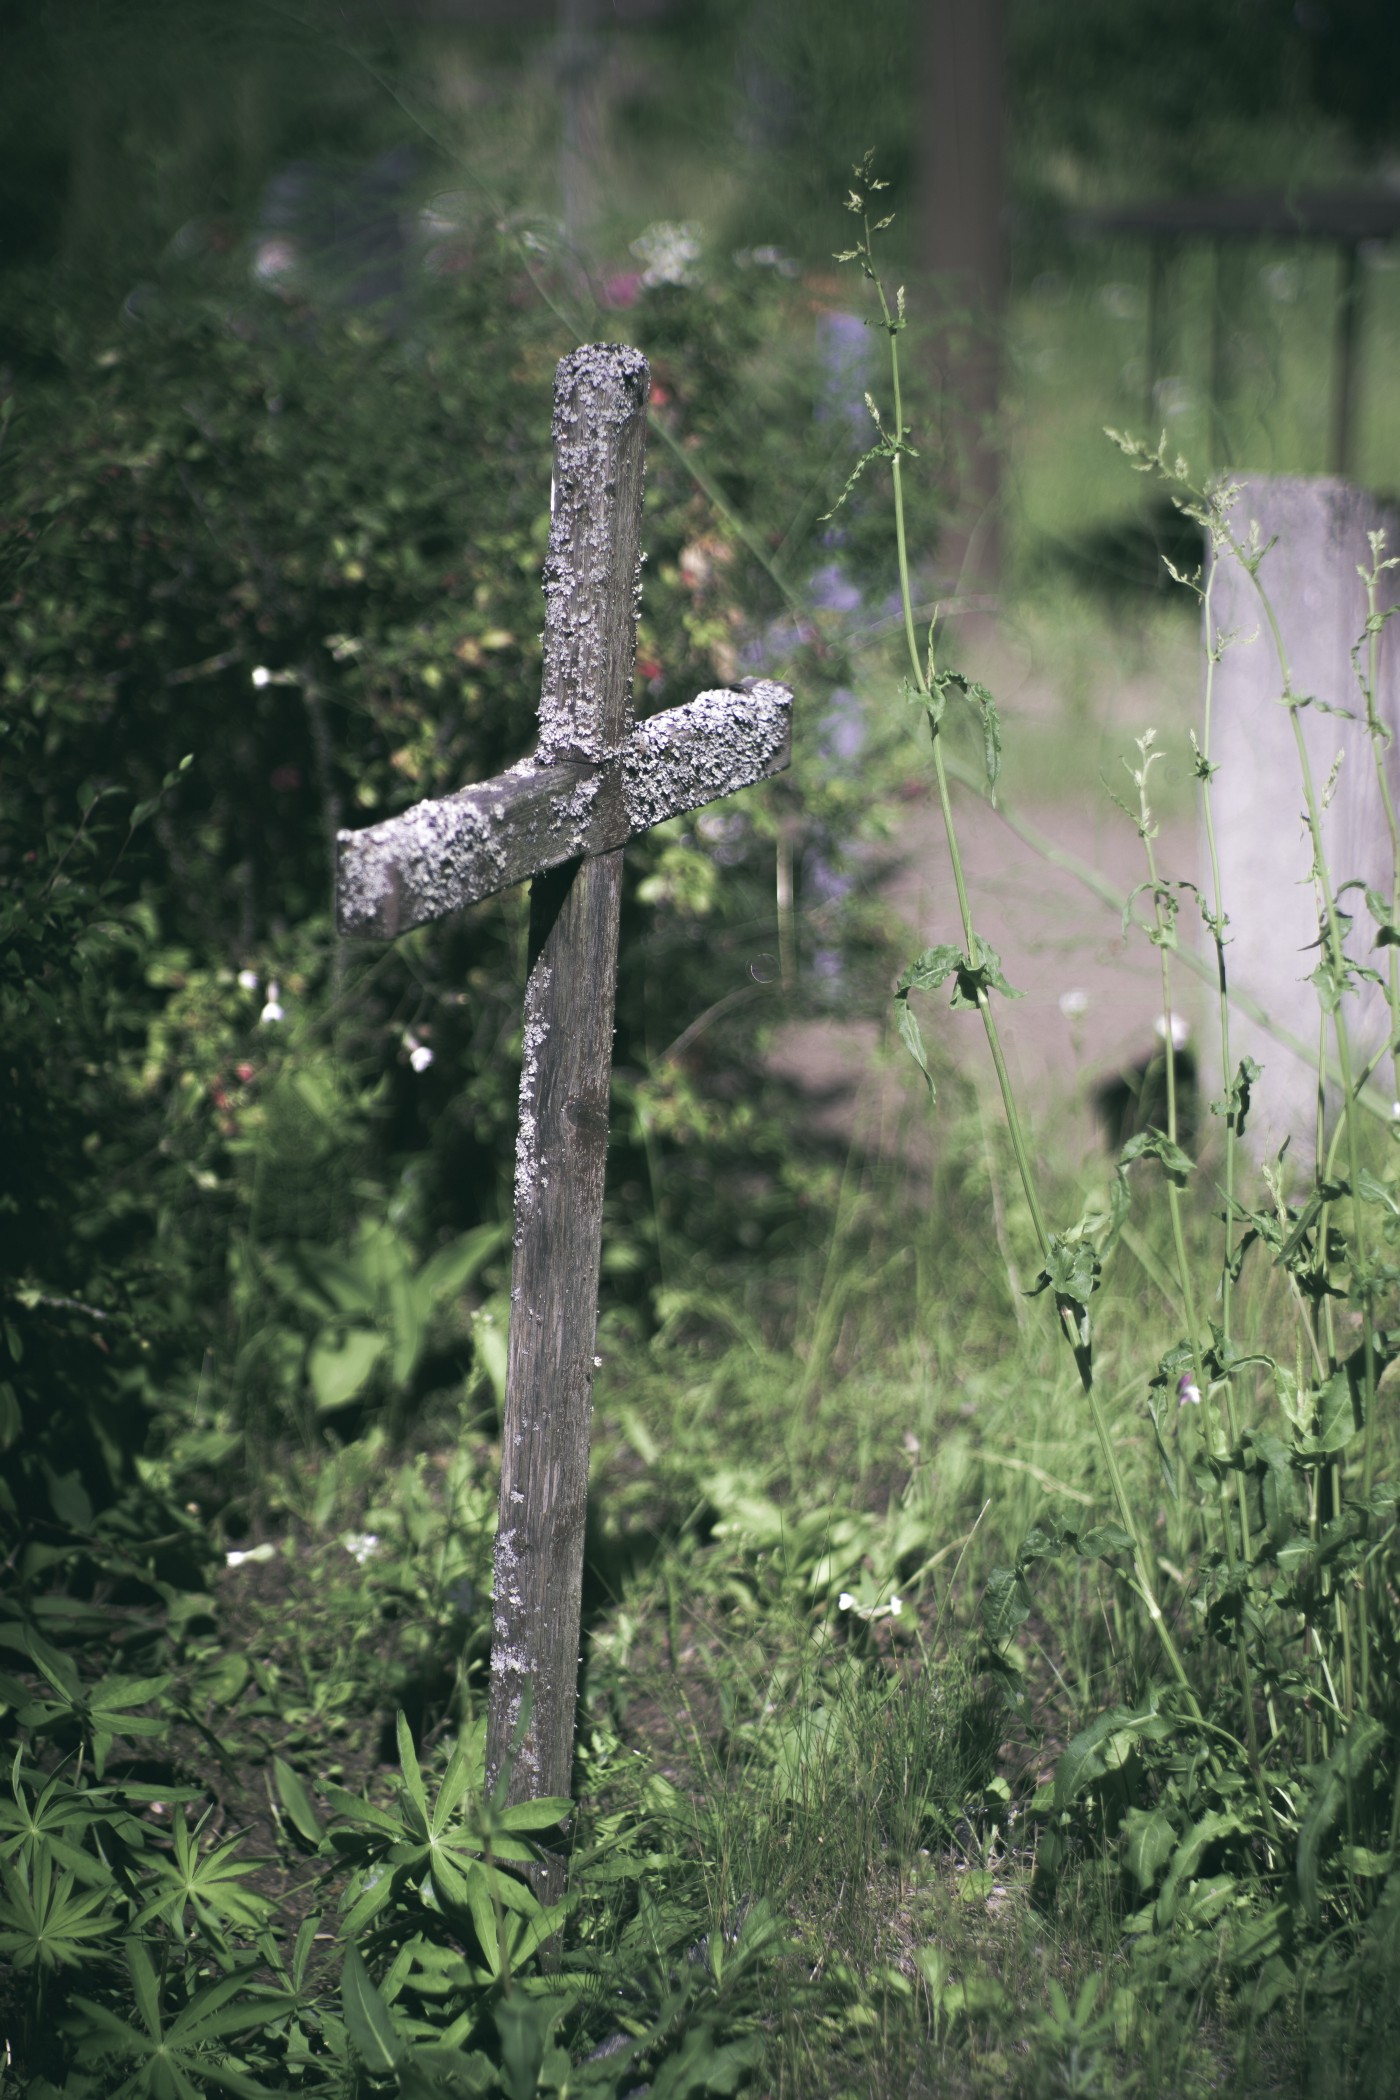 A small wooden cross staked in grass.